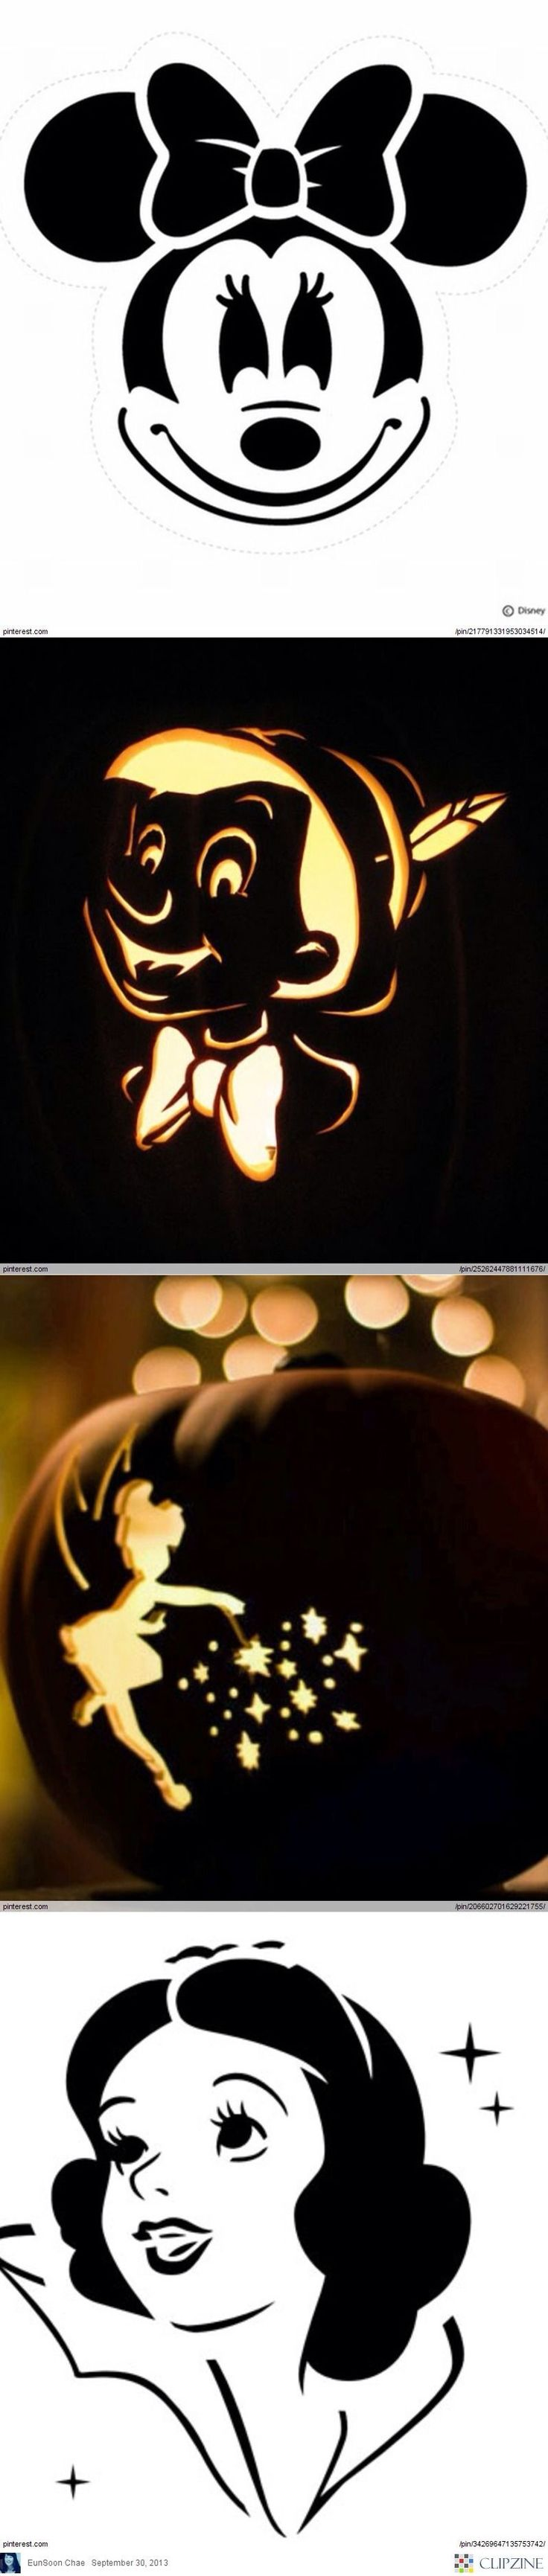 Best 25+ Small pumpkin carving ideas ideas only on Pinterest ...